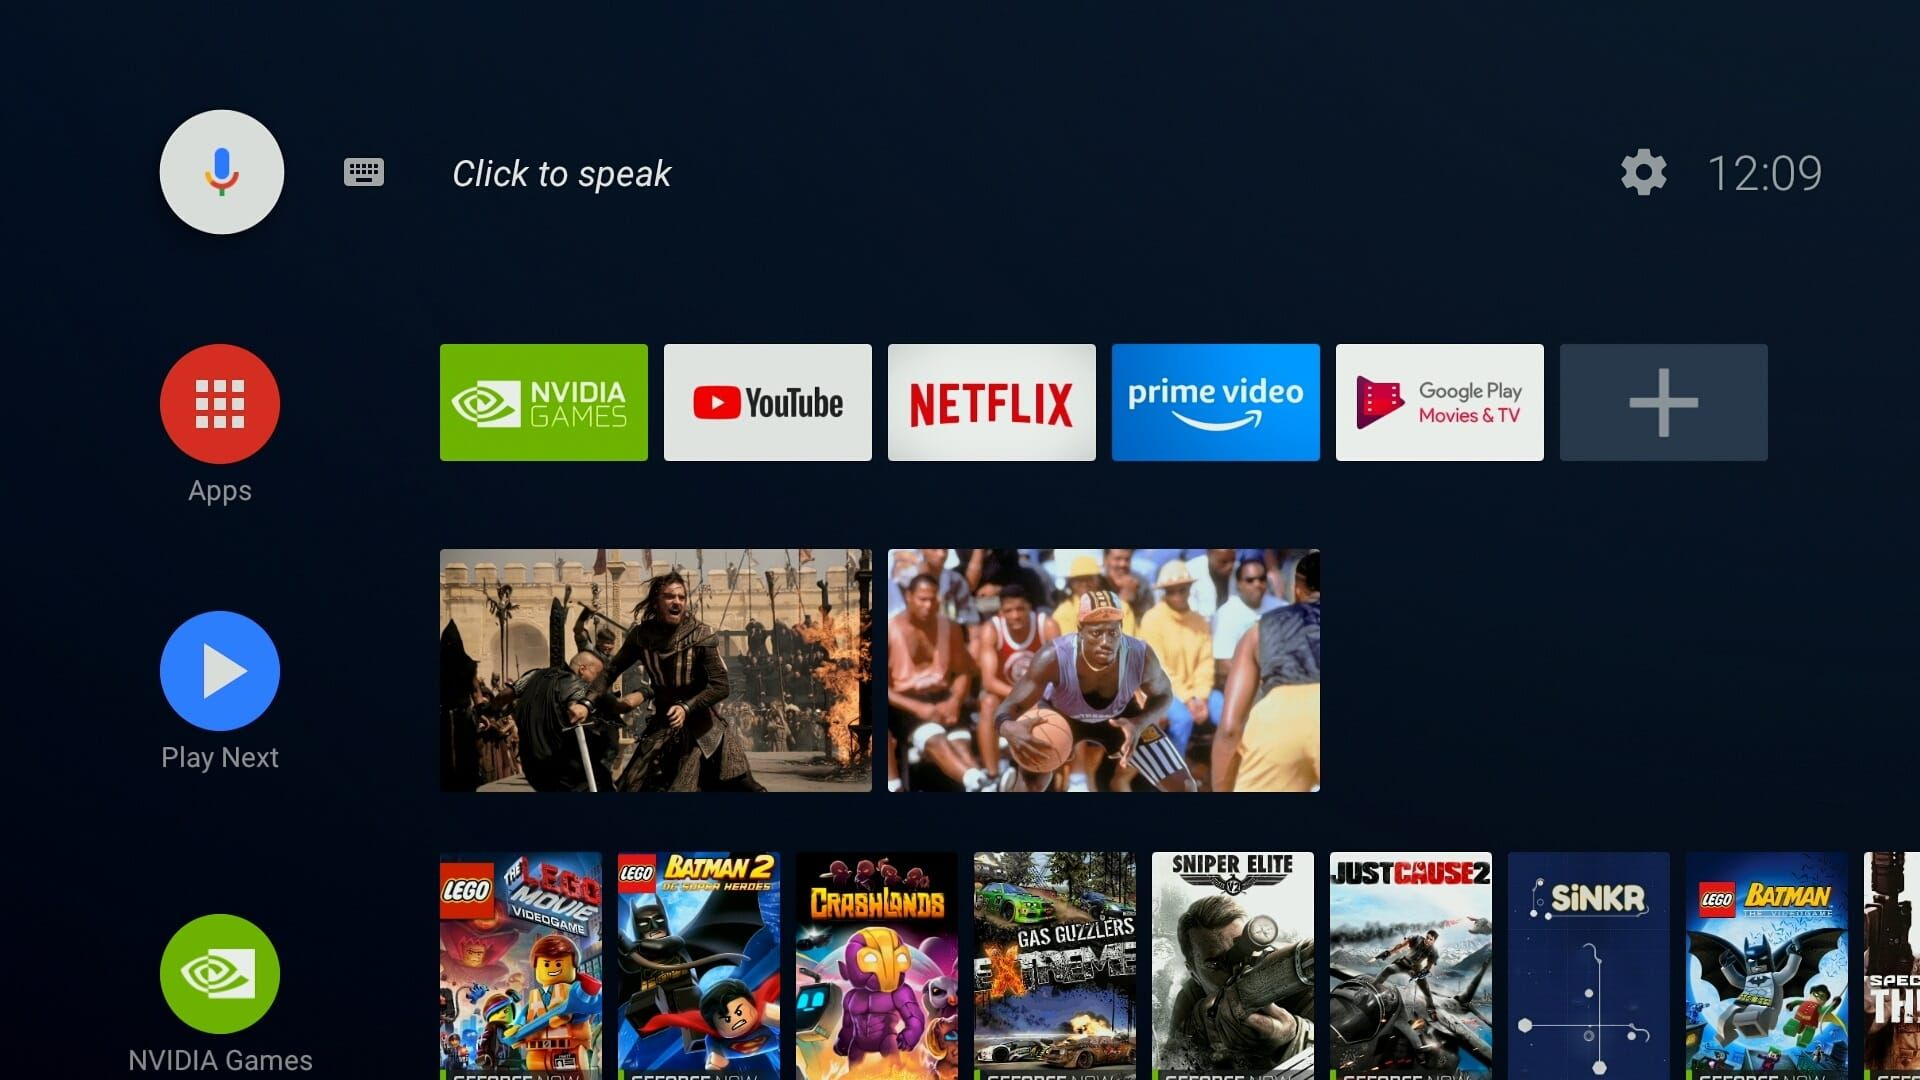 NVIDIA SHIELD Android TV Revised Oreo Update Now Rolling